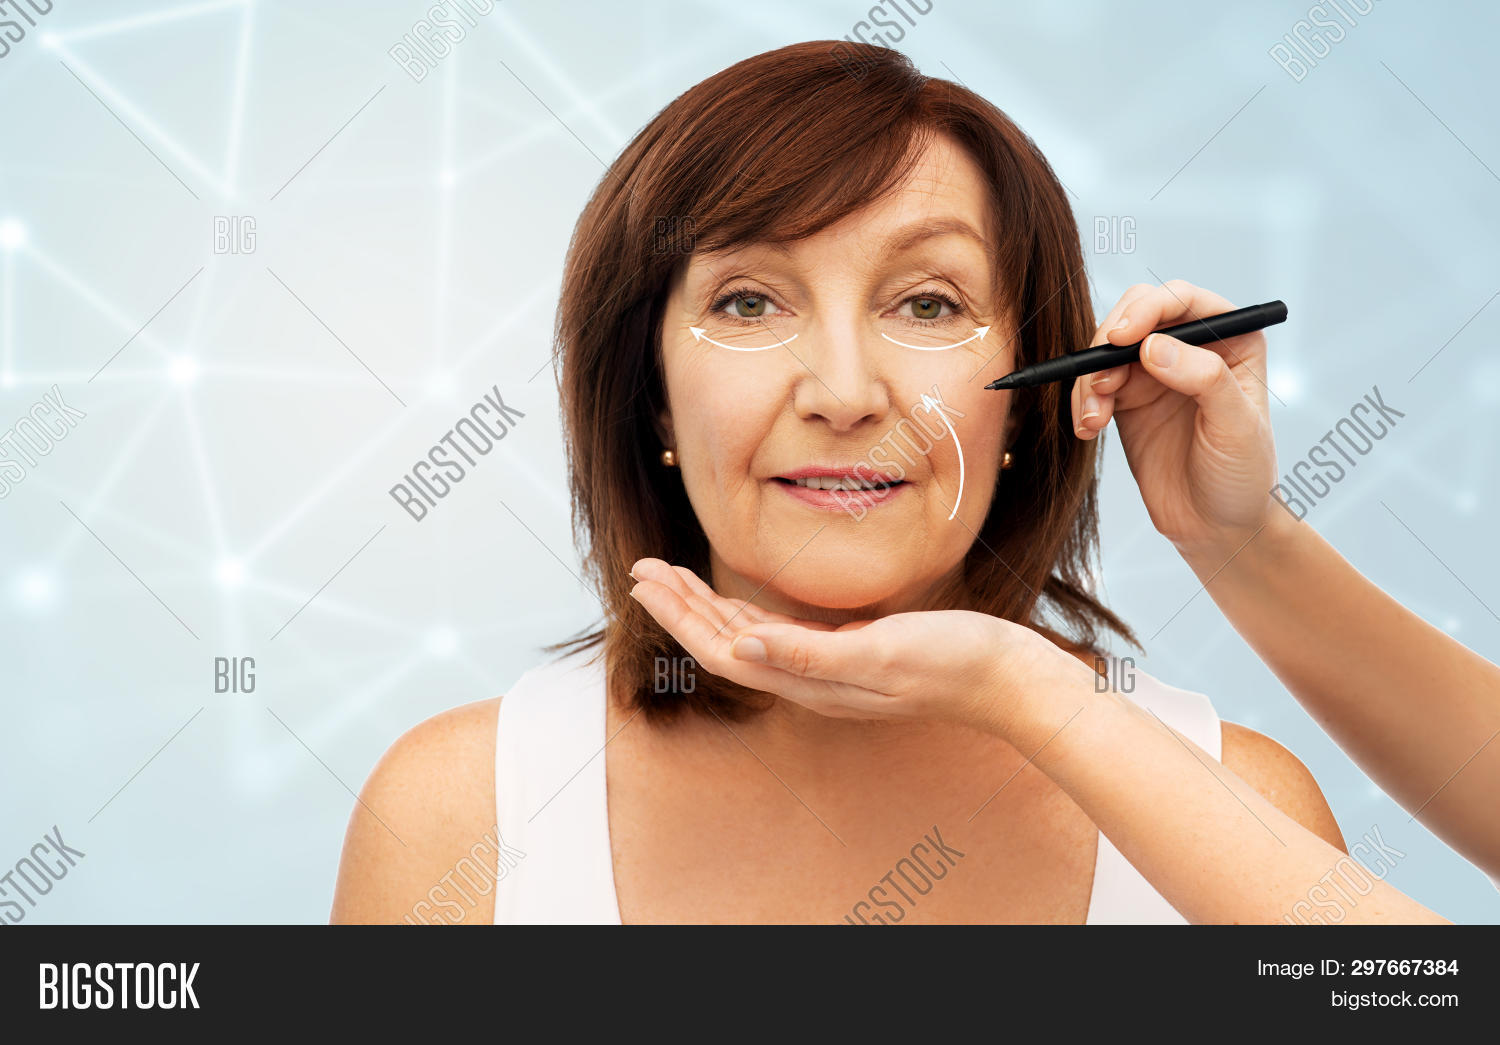 beauty, plastic surgery and anti-age concept - senior woman with with face lifting arrows and surgeon's hands with marker over blue background with low poly mesh